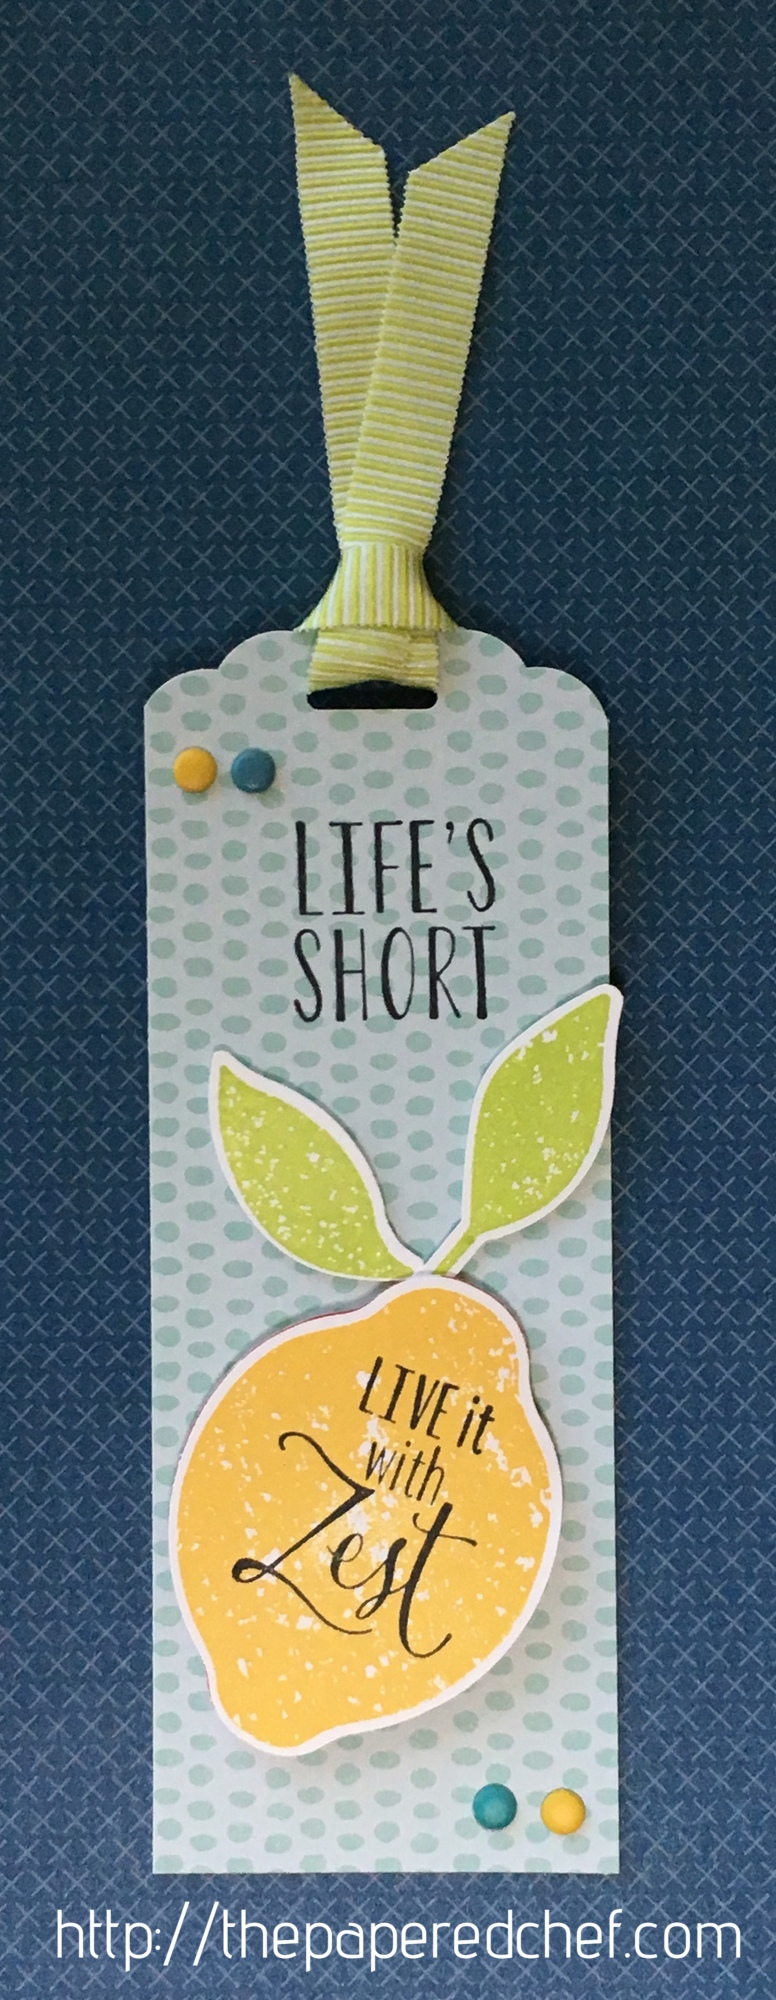 Life's Short - Live it with Zest Bookmark